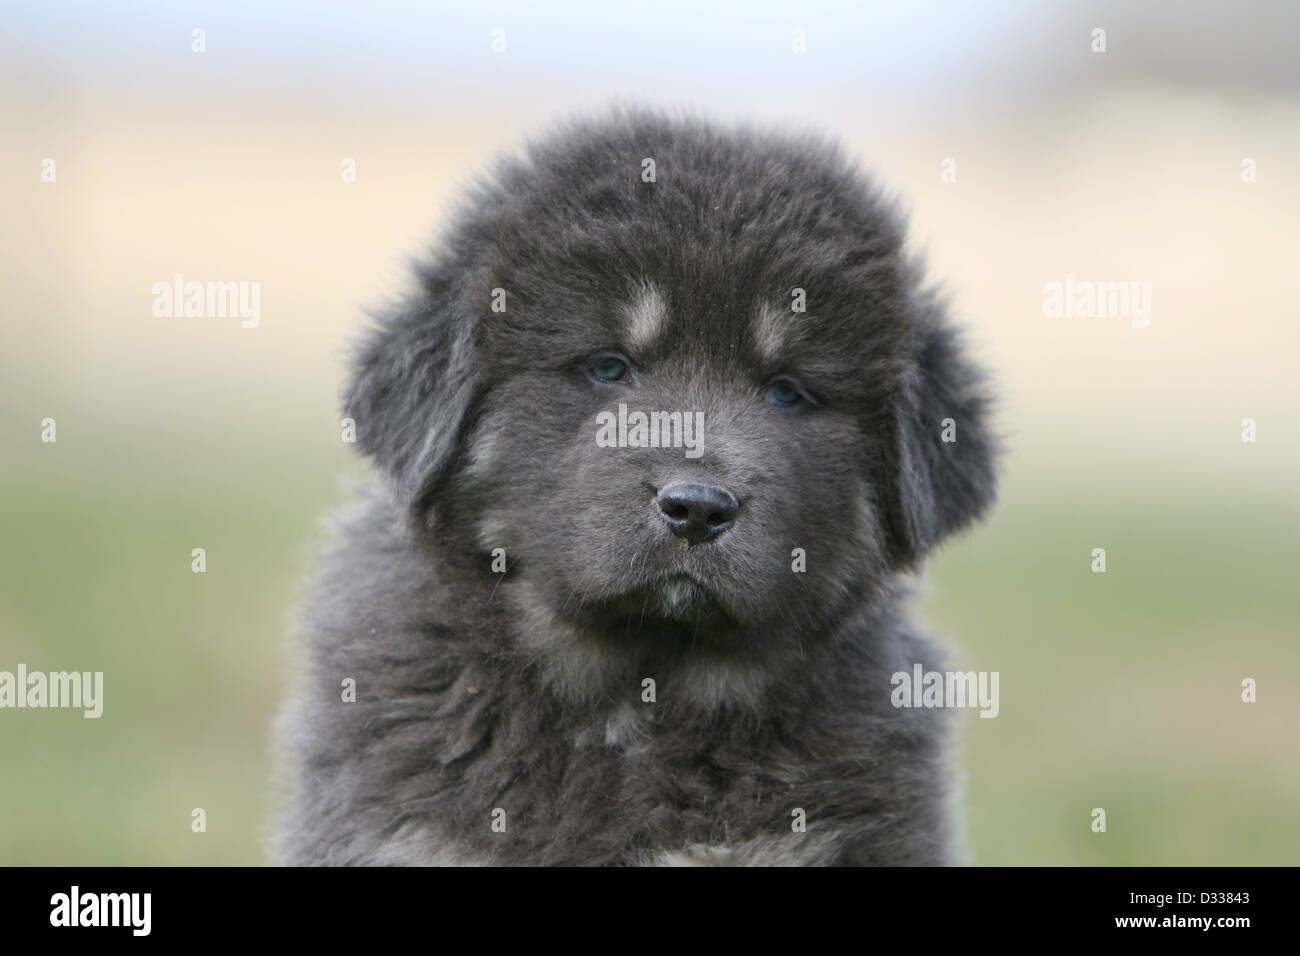 Tibetan Mastiff Puppy Stock Photos & Tibetan Mastiff Puppy Stock ...